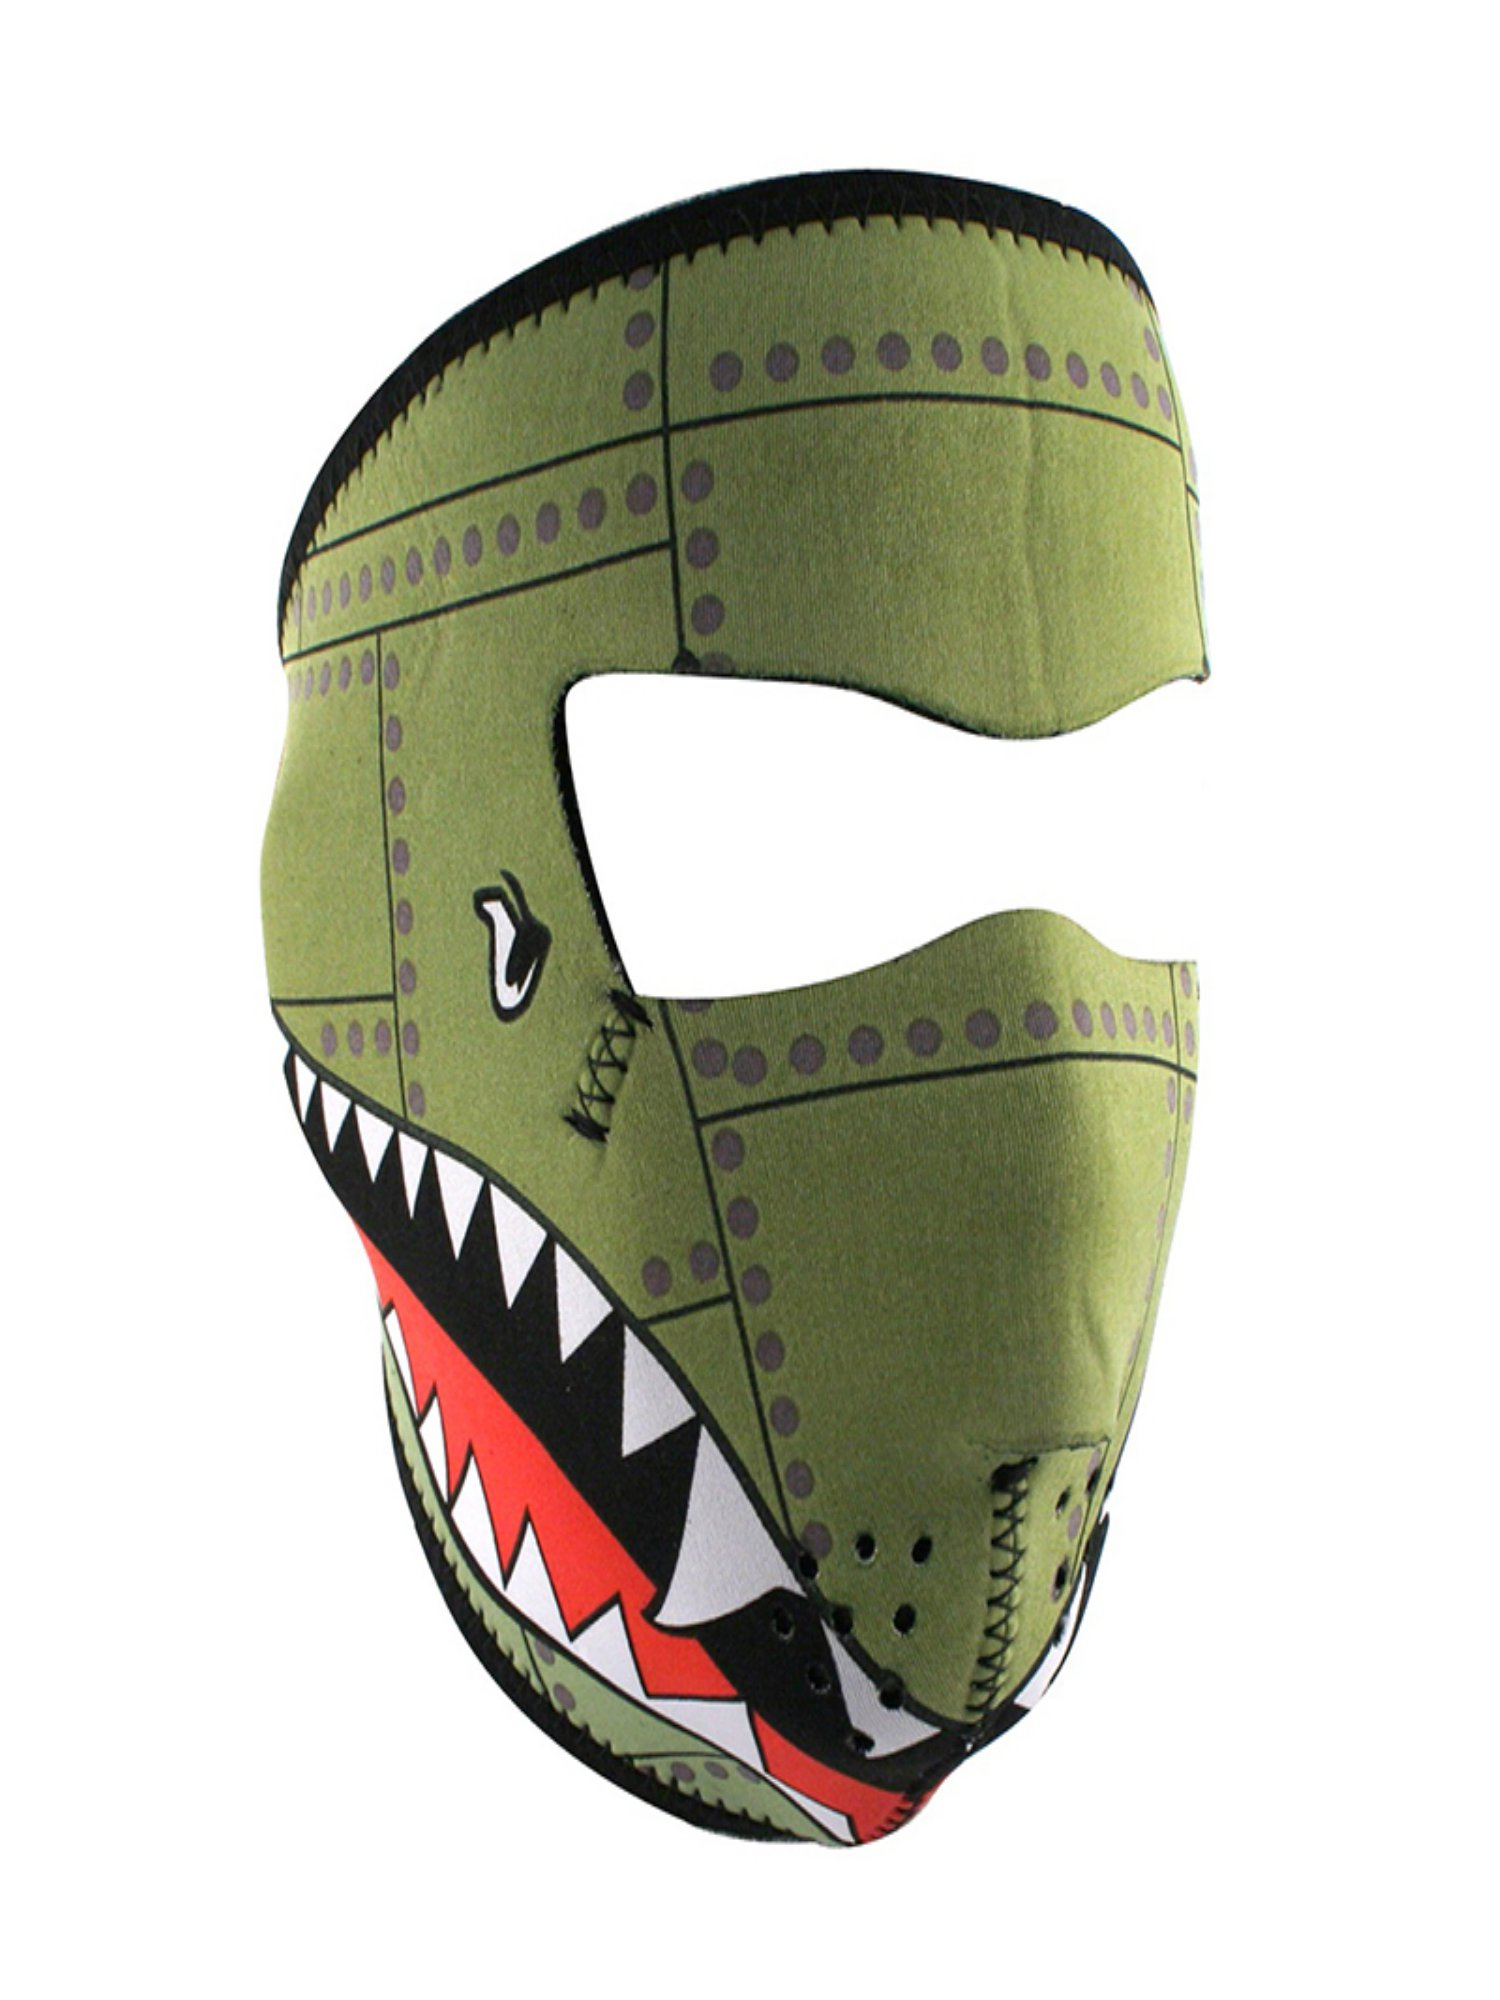 ZANheadgear Neoprene Full Mask by Balboa